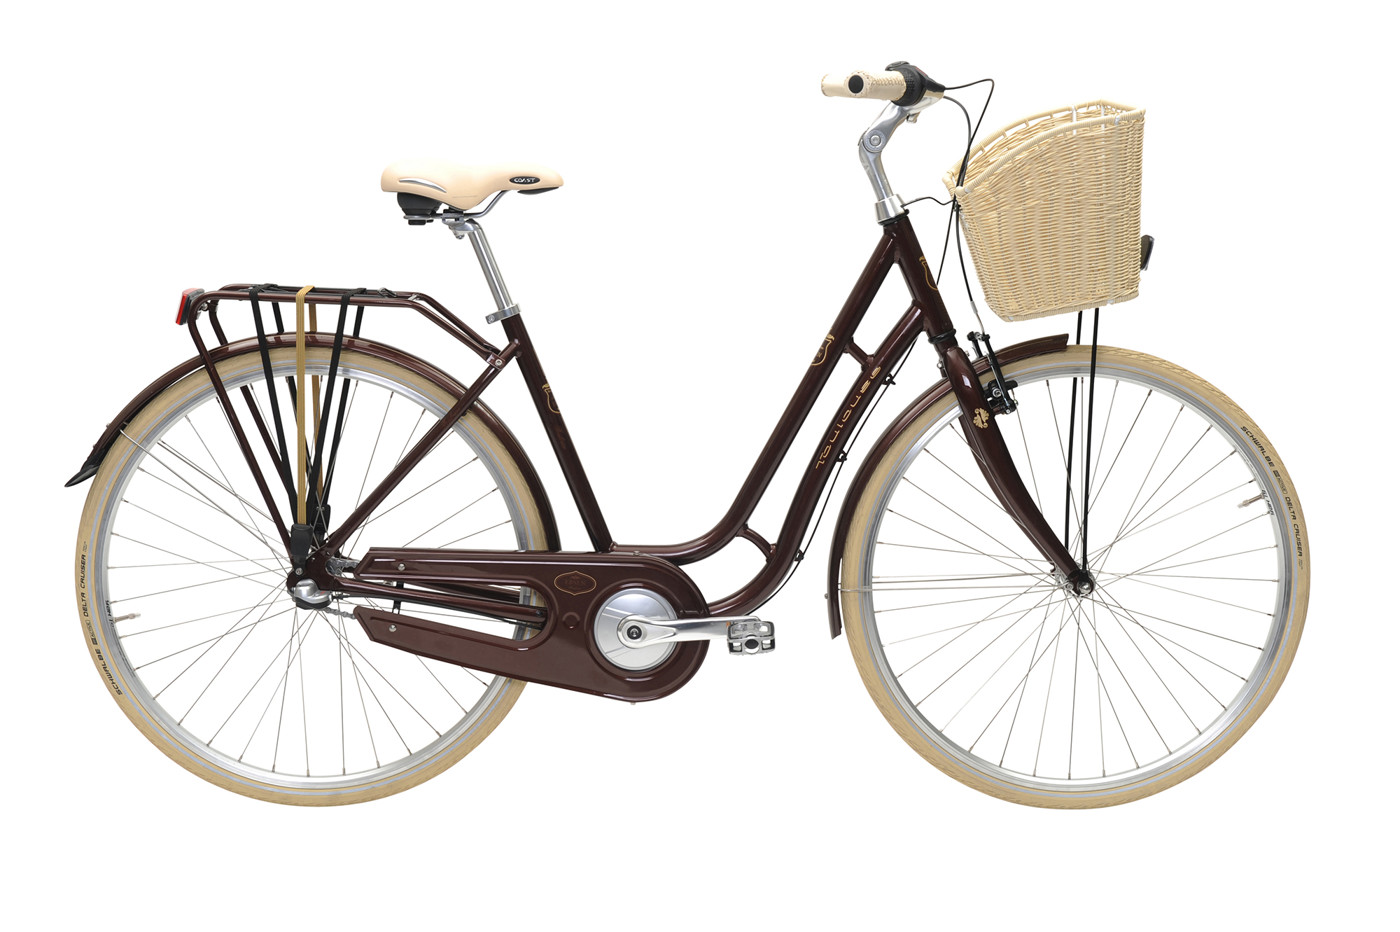 EBSEN TOULOUSE  LADY  3 SPEED  50  EARTH BROWN 2016 Klassisk Citybike